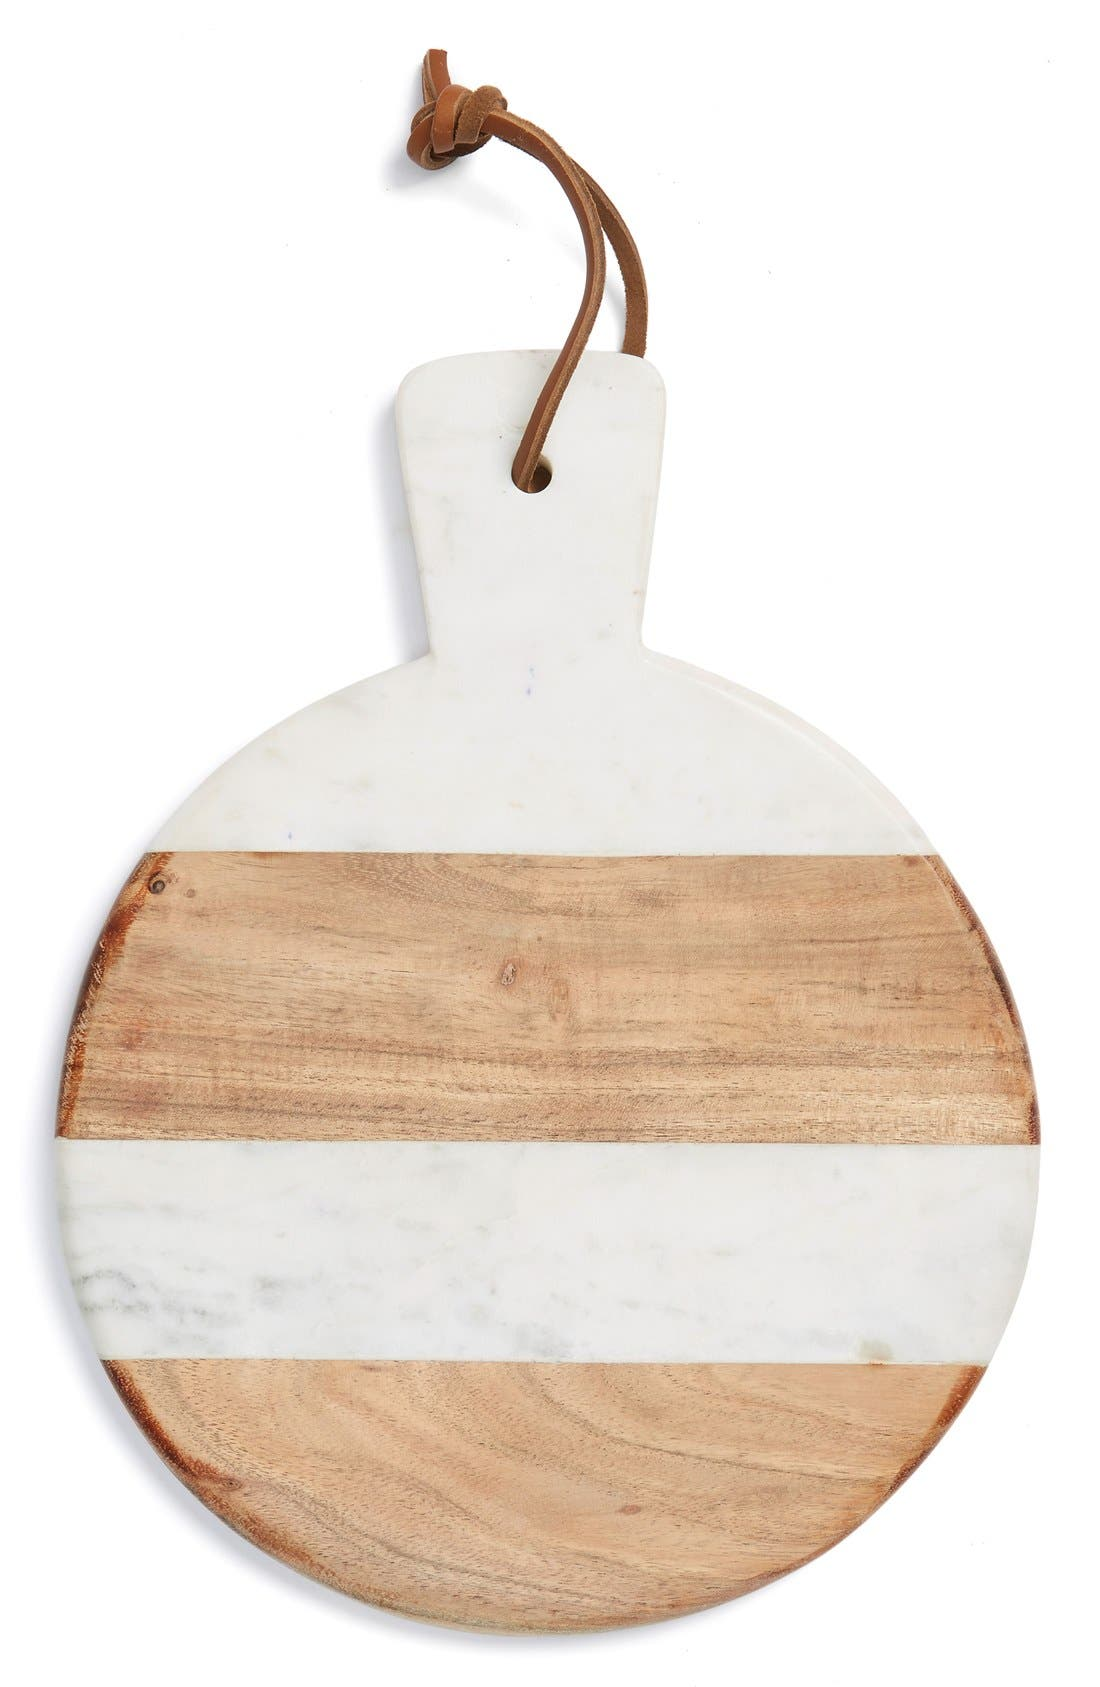 Thirstystone Marble & Wood Paddle Serving Board